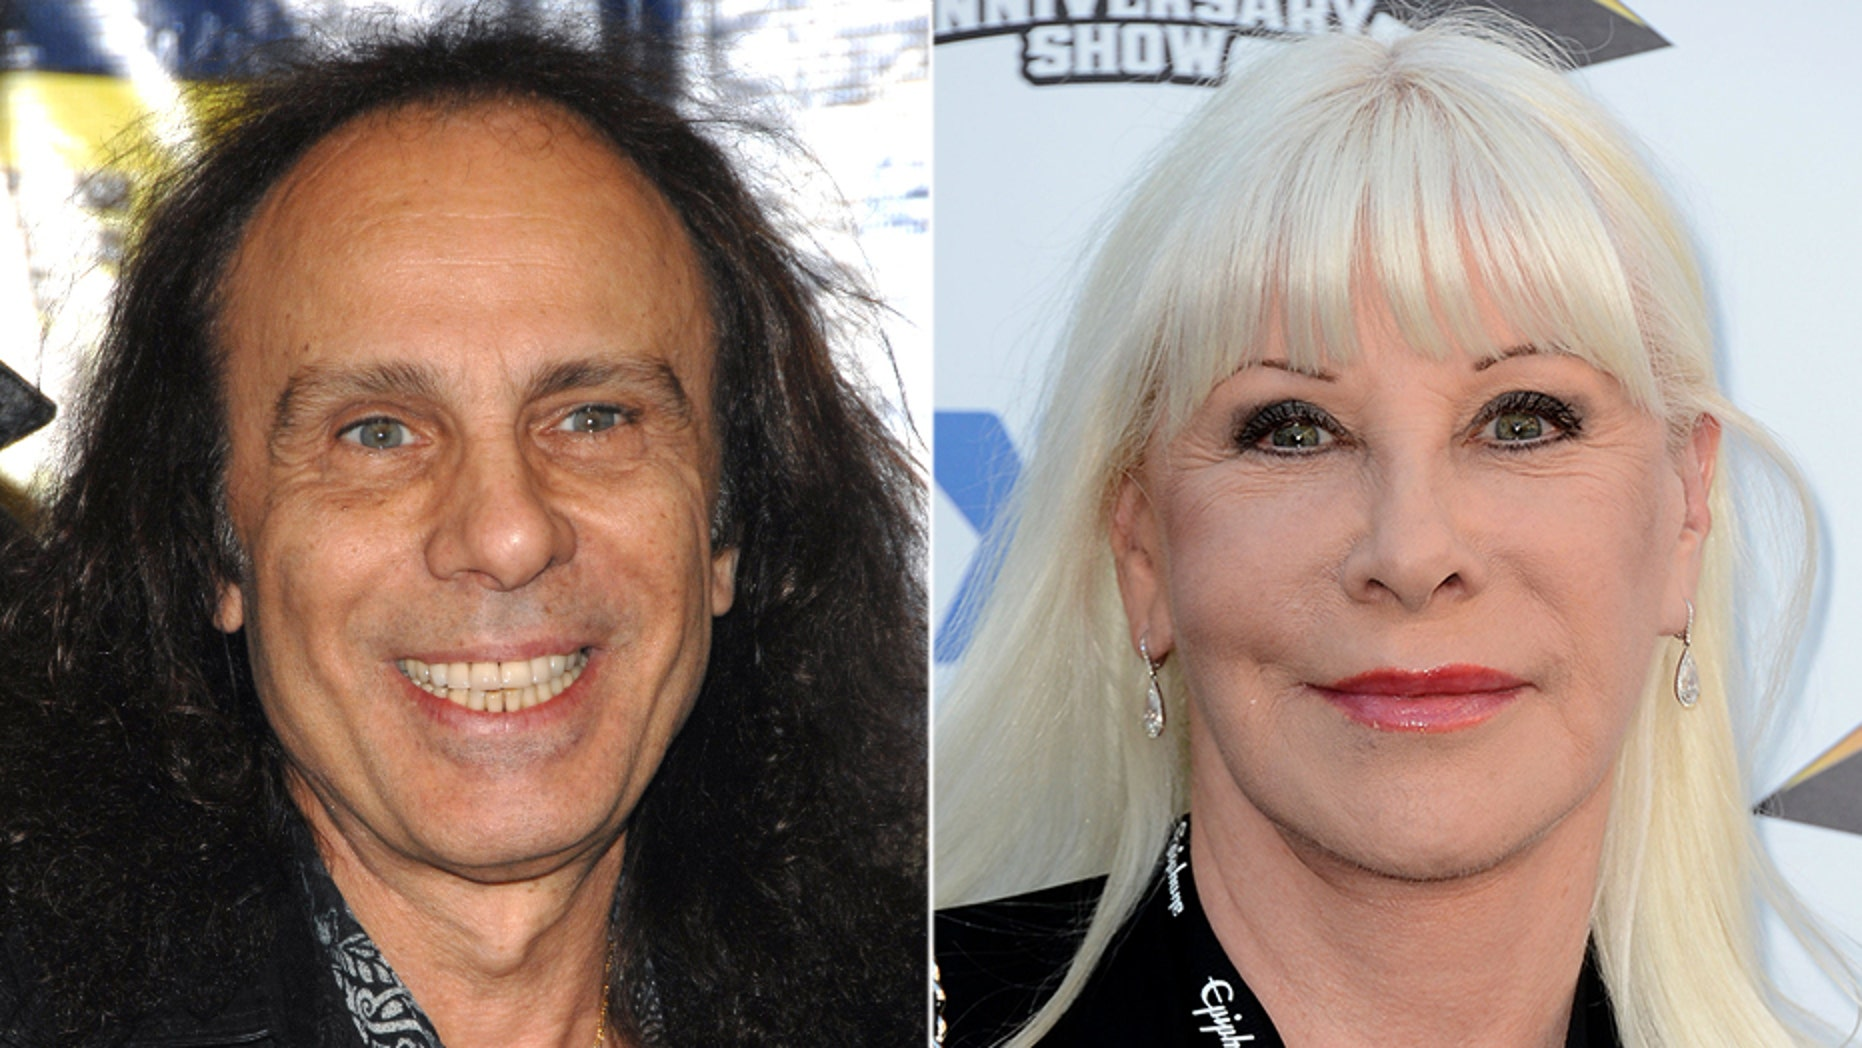 Ronnie James Dio's widow Wendy Dio tells all about life with the late rocker.